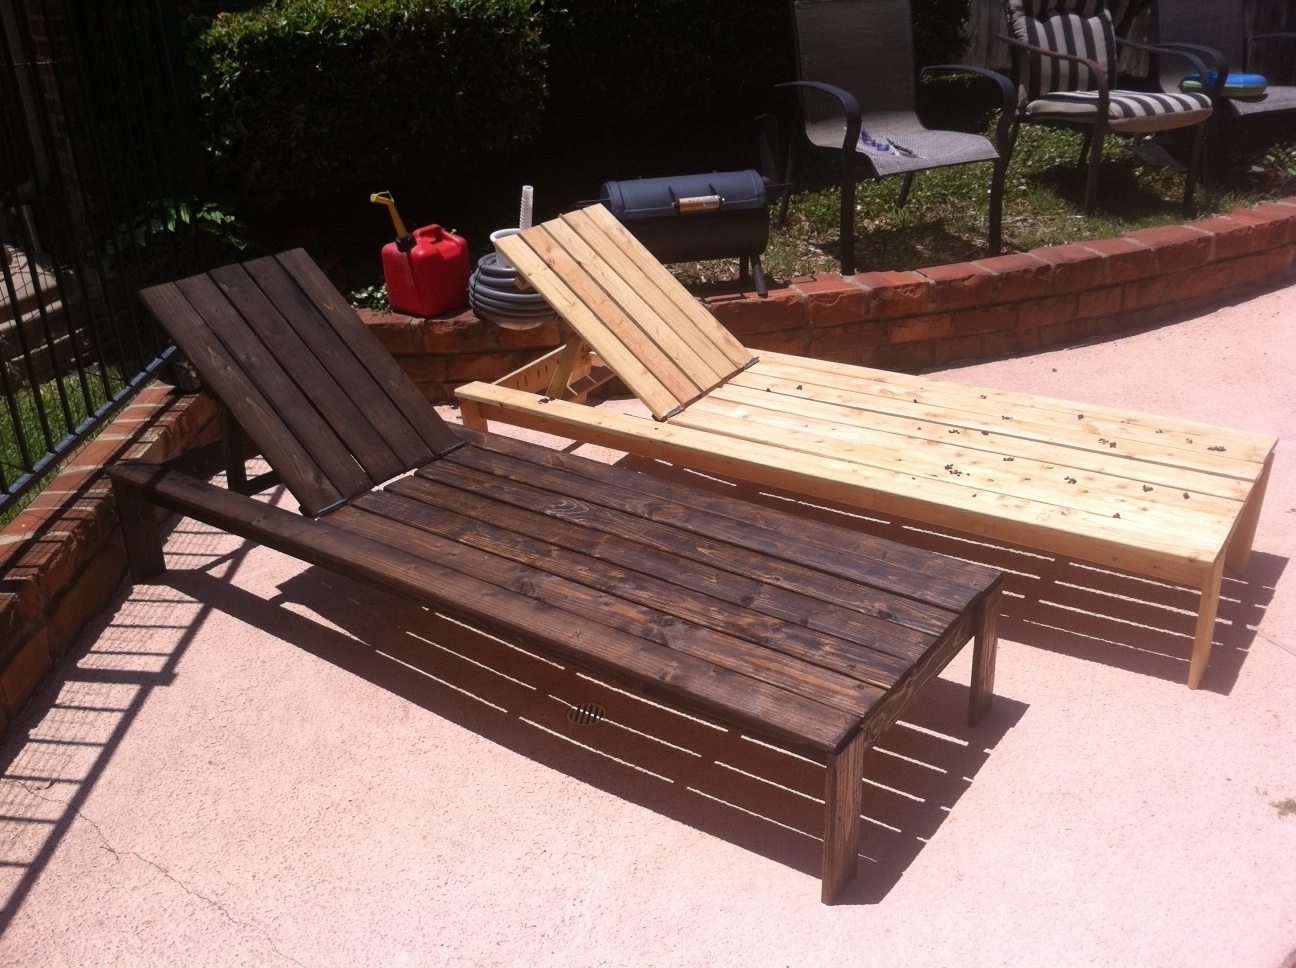 Preferred Diy Pool Chaise Lounge Chairs — Bed And Shower : Decorating Pool Intended For Diy Outdoor Chaise Lounge Chairs (View 12 of 15)